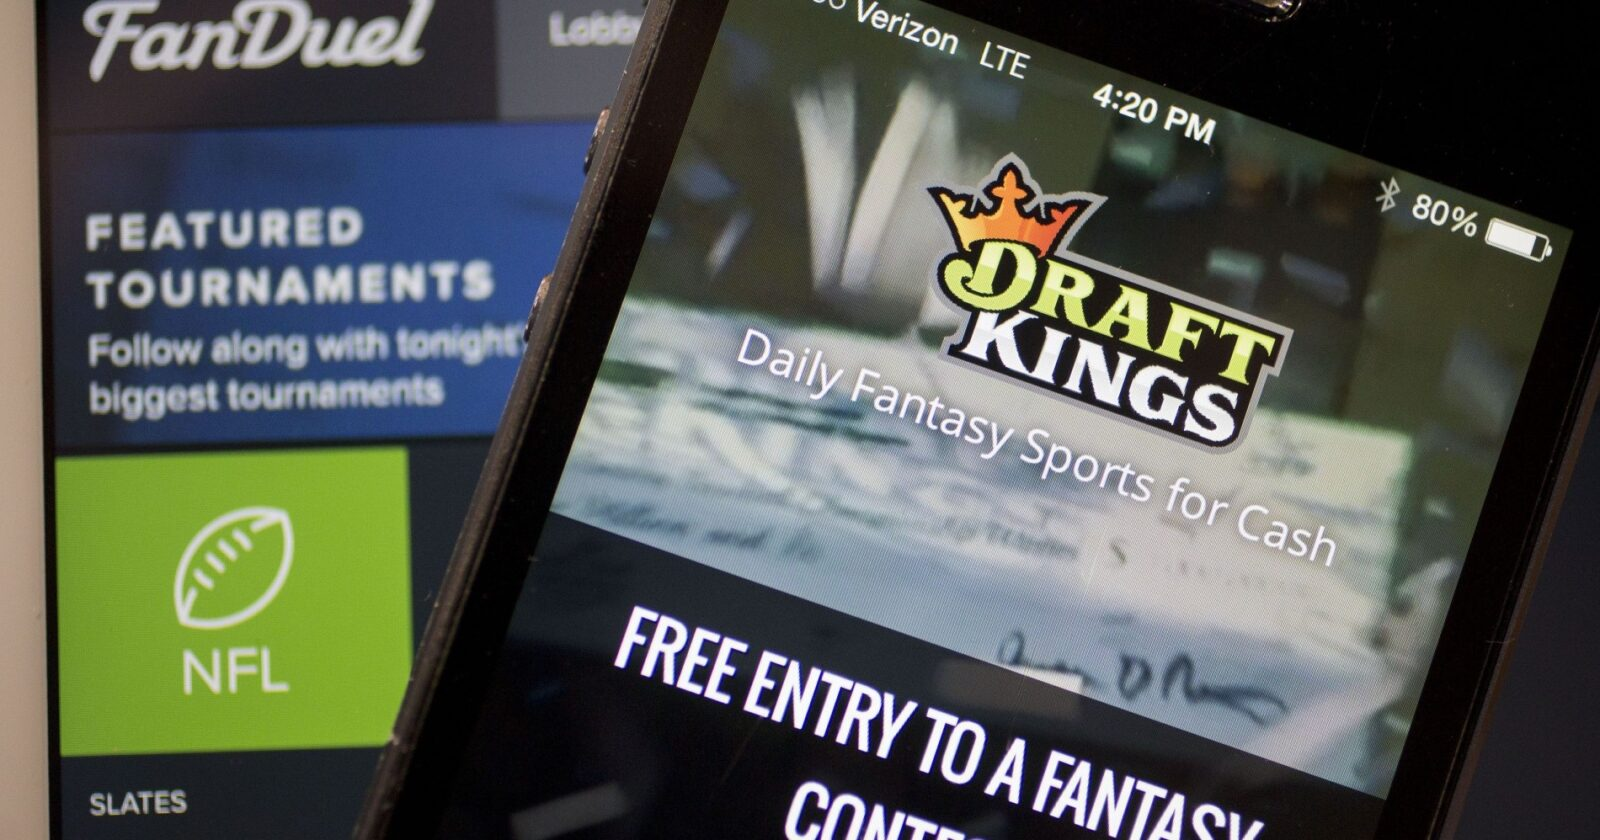 FanDuels and DraftKings: How Is That Not Gambling?